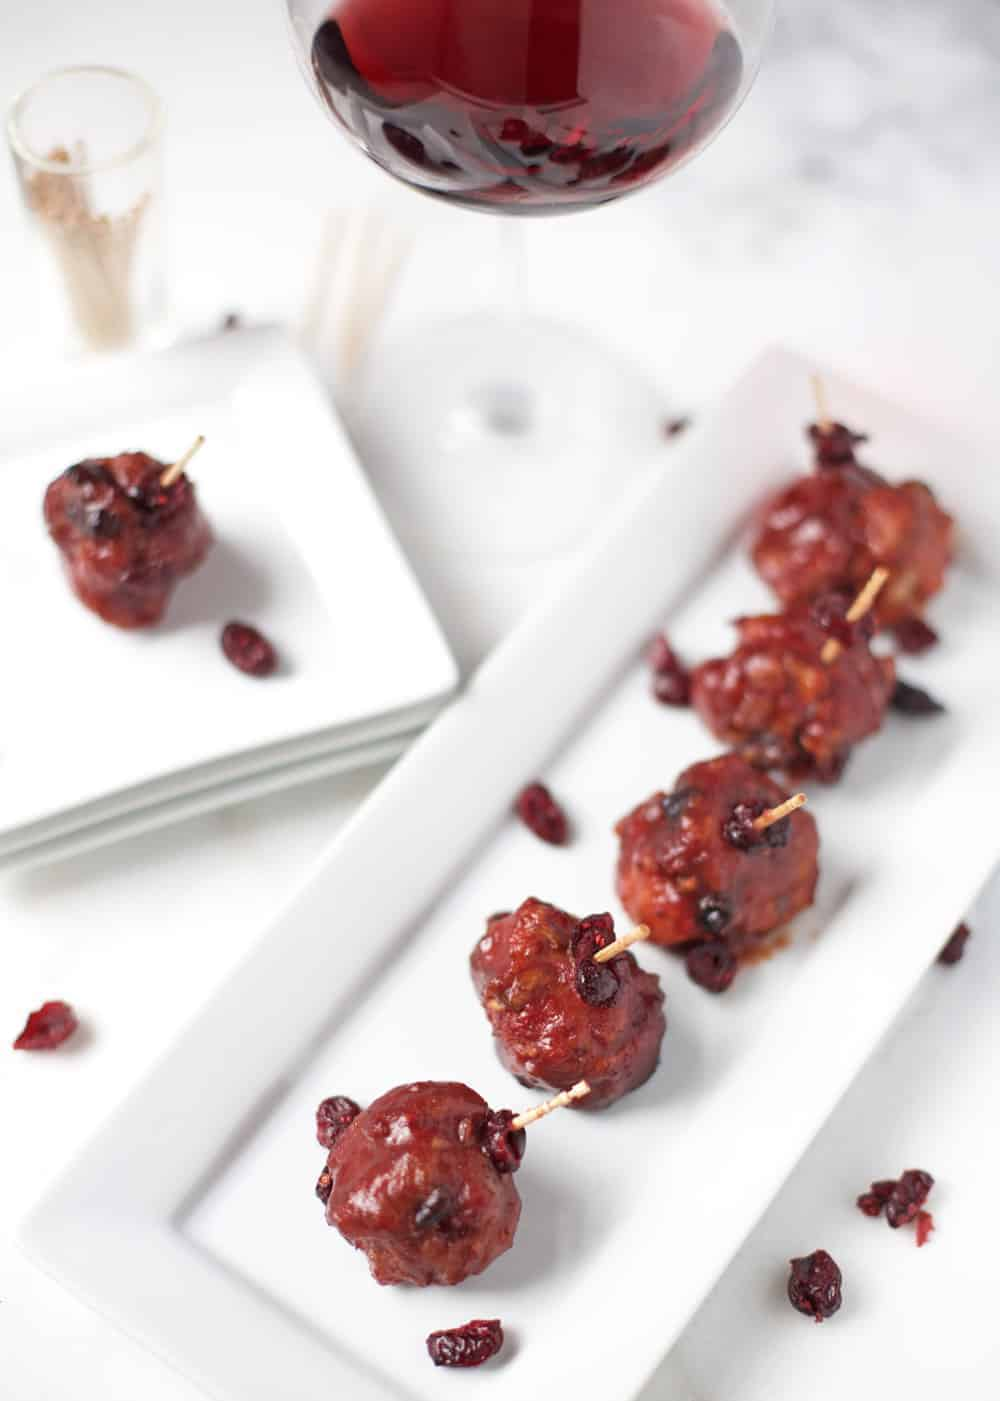 Smoked Meatballs with a Cranberry and Red Wine Sauce